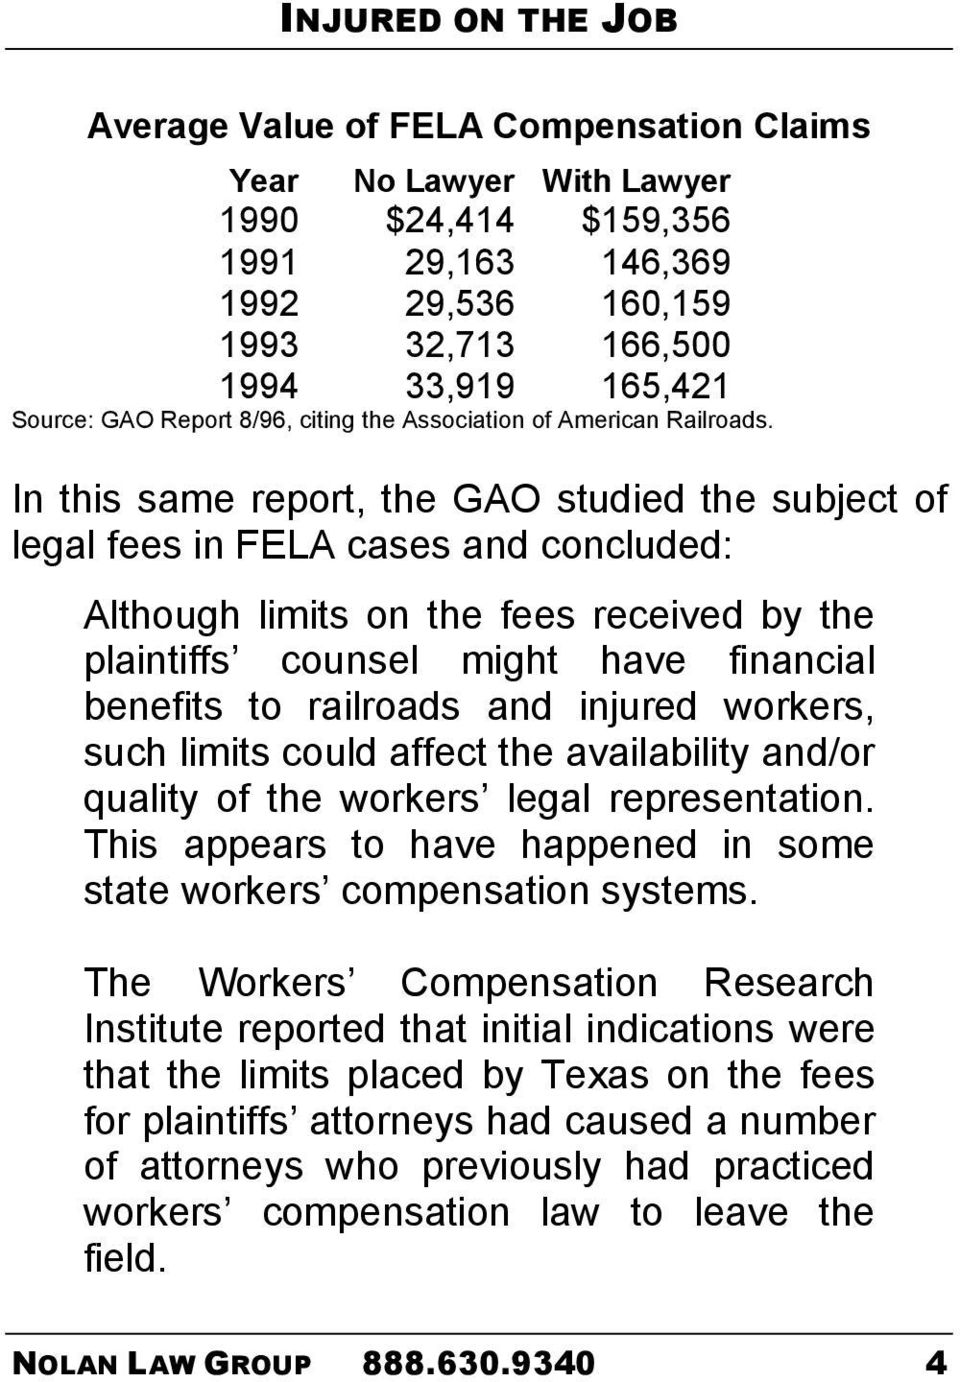 In this same report, the GAO studied the subject of legal fees in FELA cases and concluded: Although limits on the fees received by the plaintiffs counsel might have financial benefits to railroads